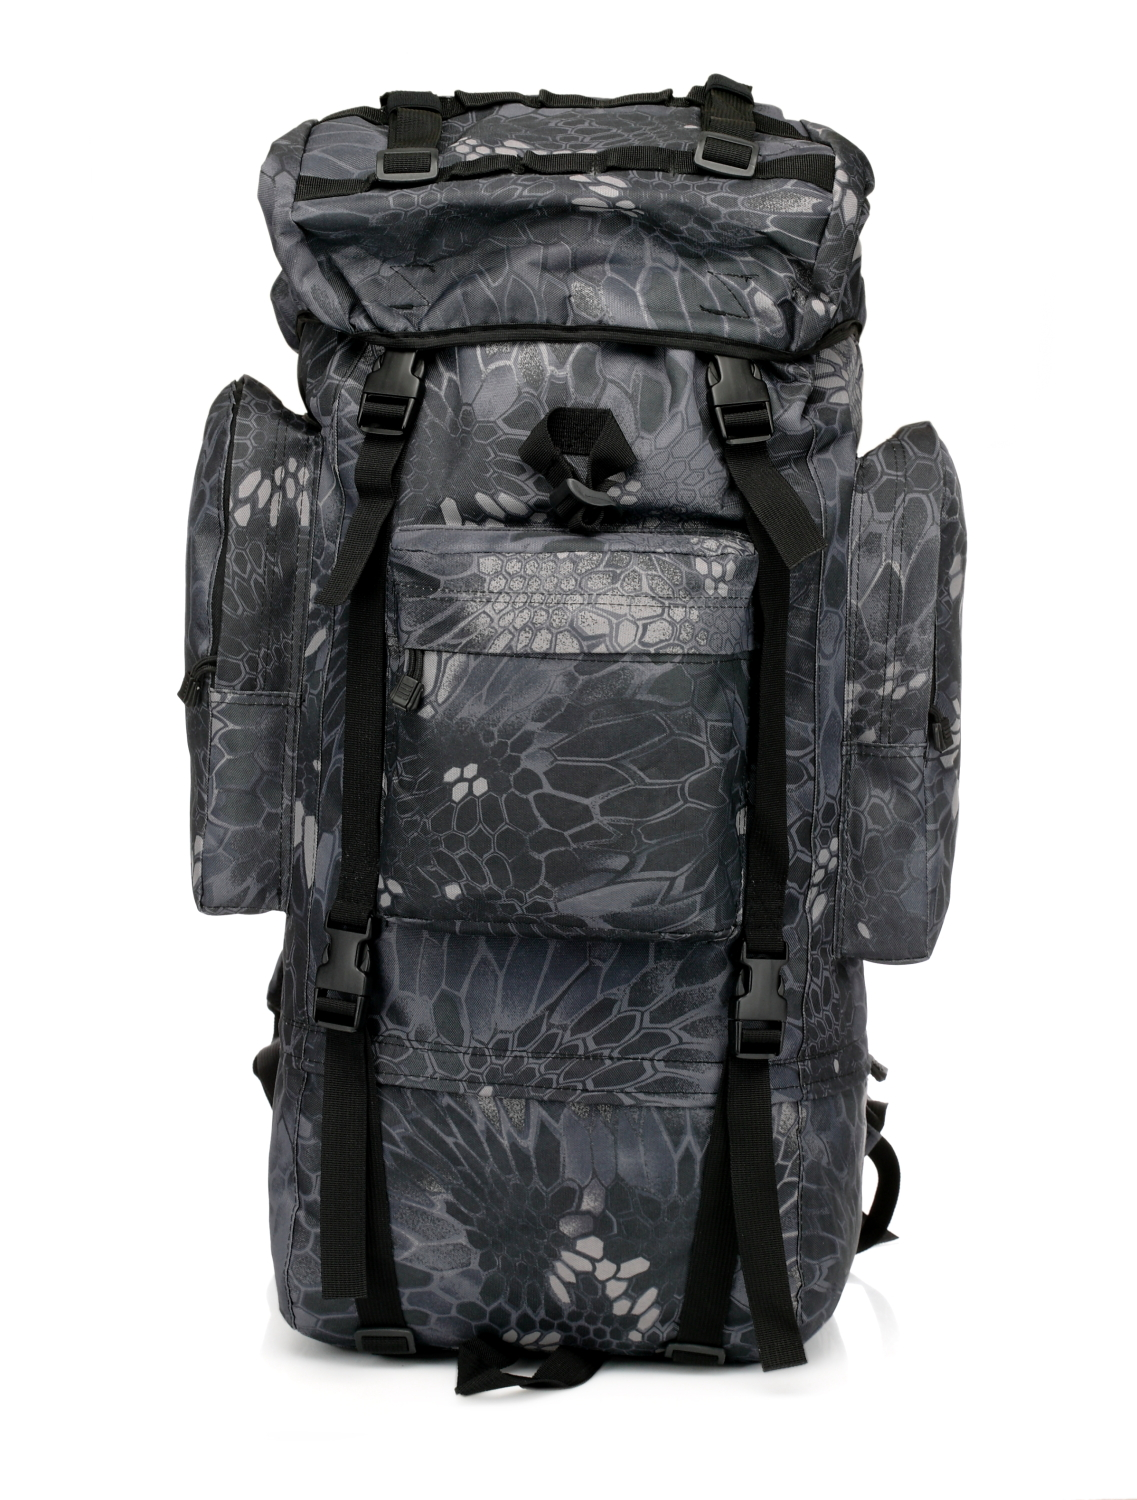 Waterproof tactical molle backpack outdoor hunting hiking military backpack